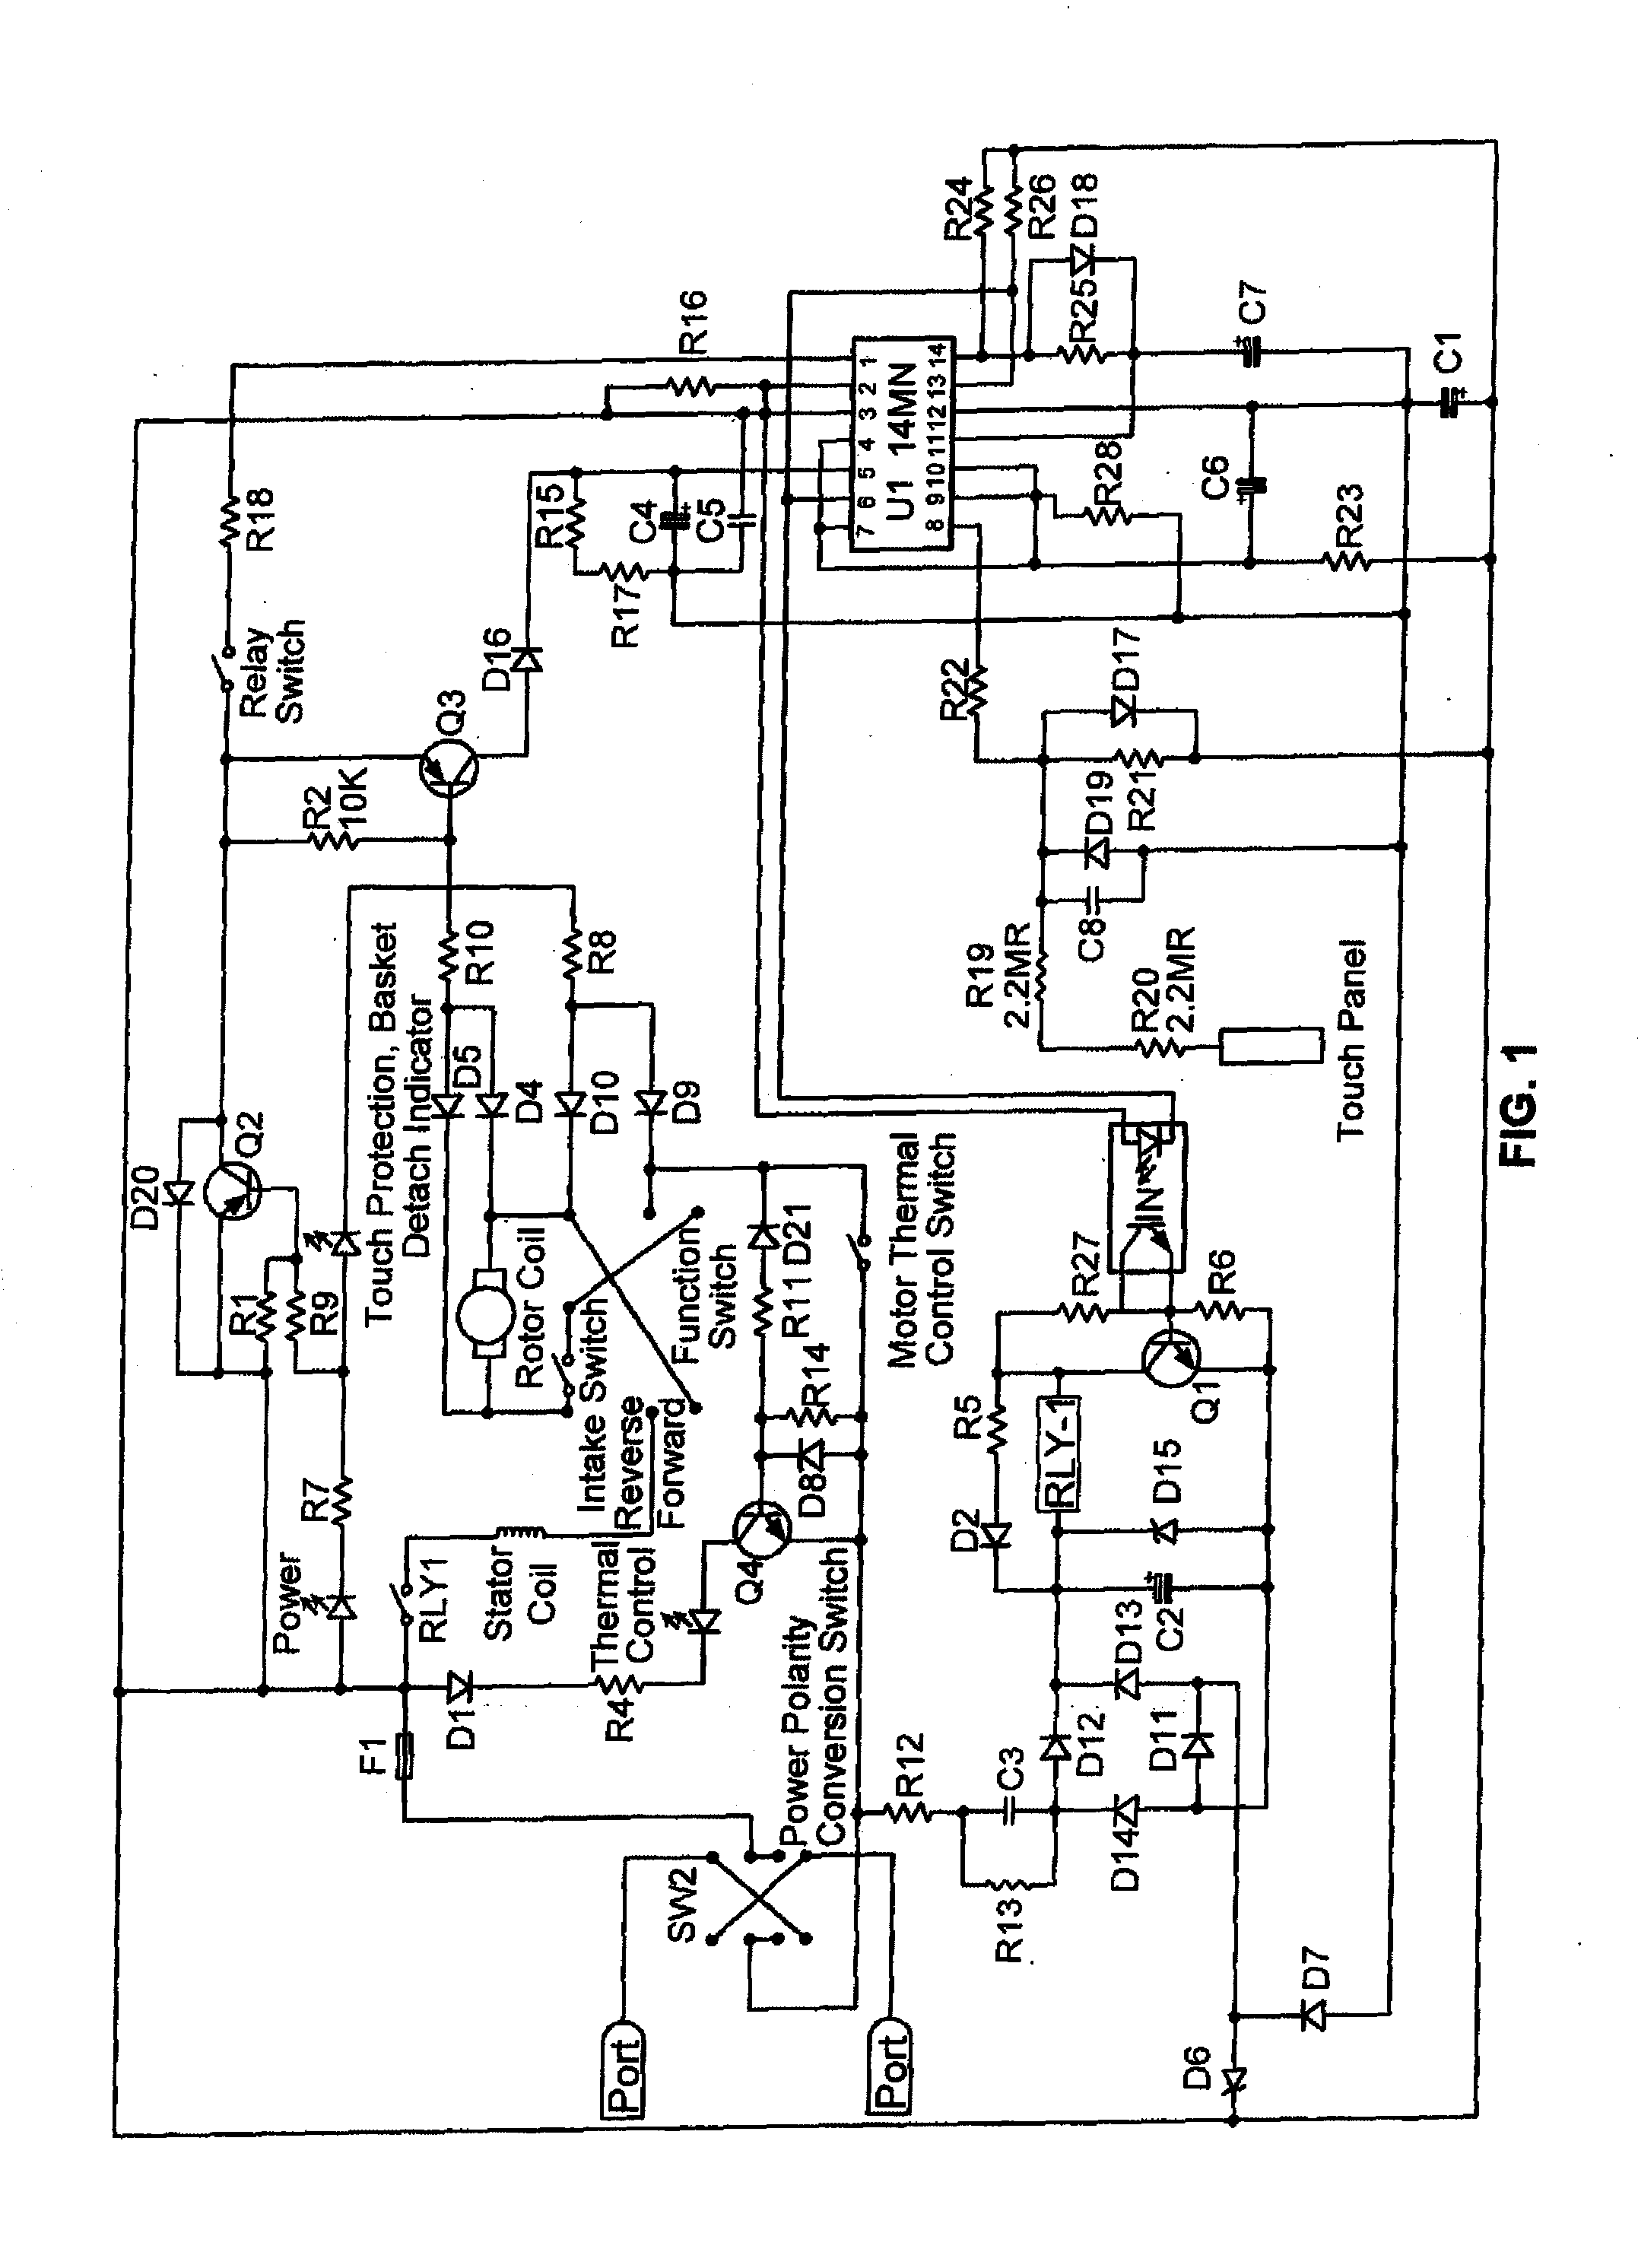 US20100116916A1 20100513 D00001 patent us20100116916 touch sensitive paper shredder control paper shredder motor wiring diagram at crackthecode.co